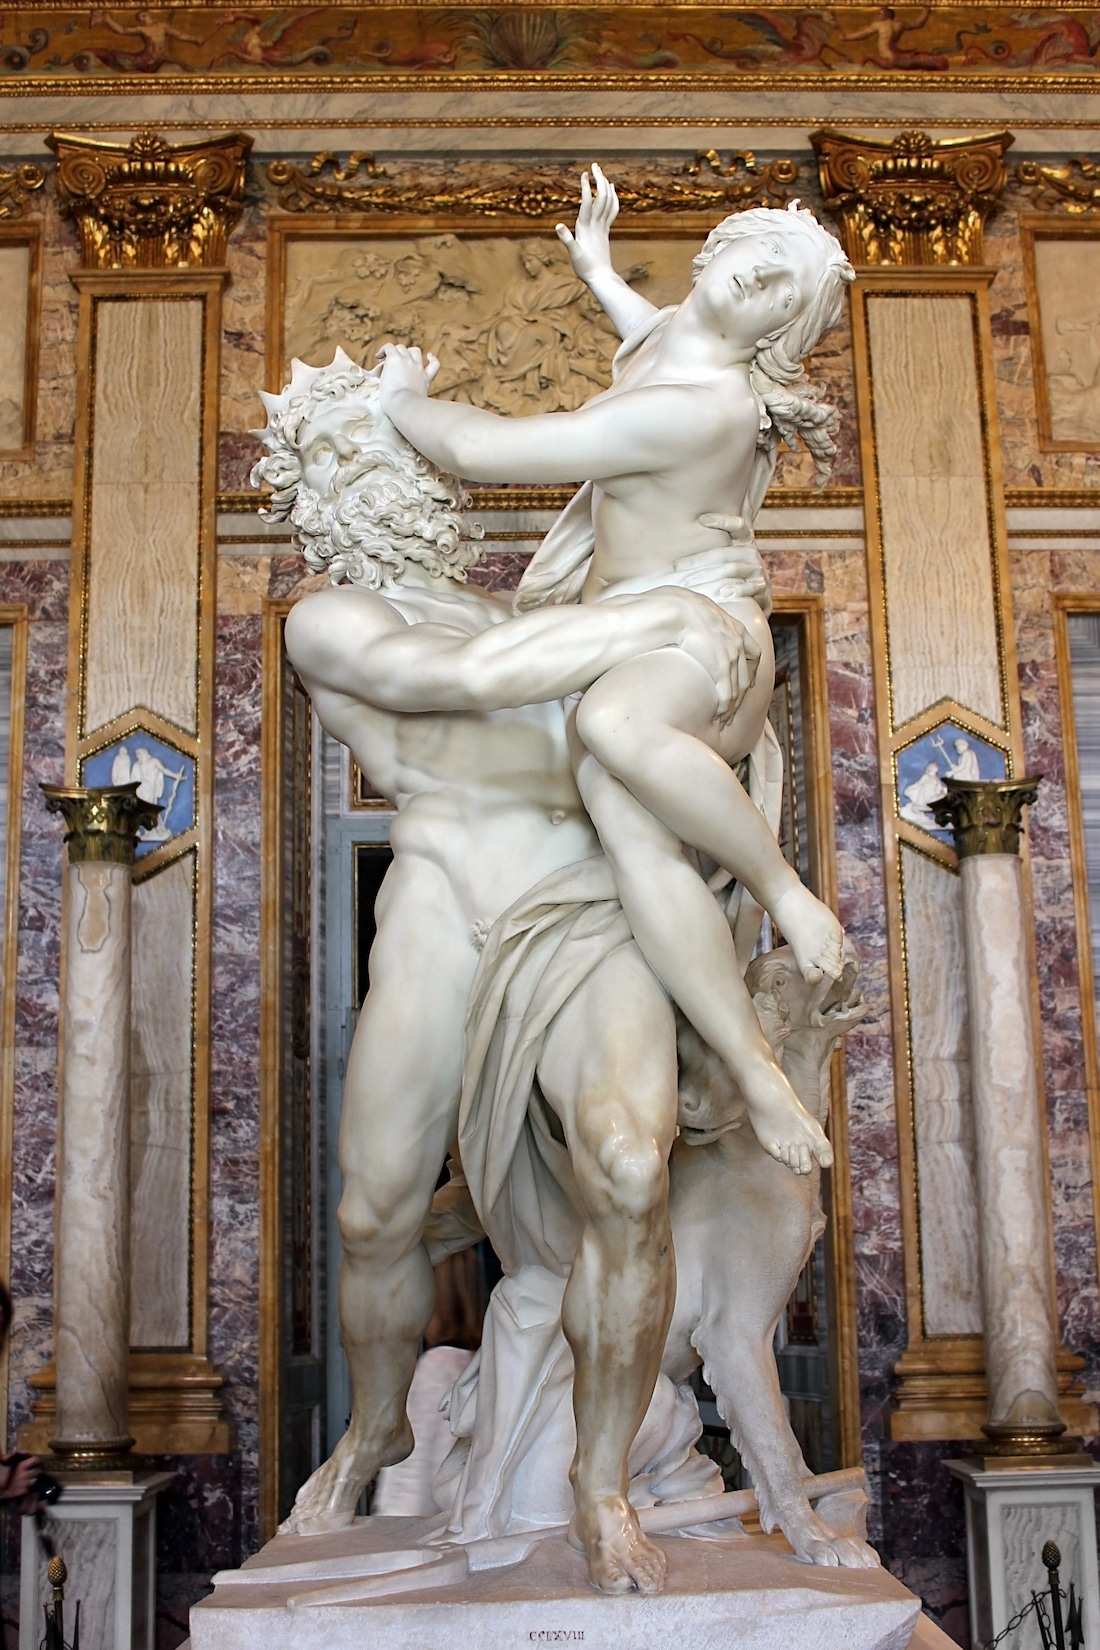 Bernini's Plato and Proserpina